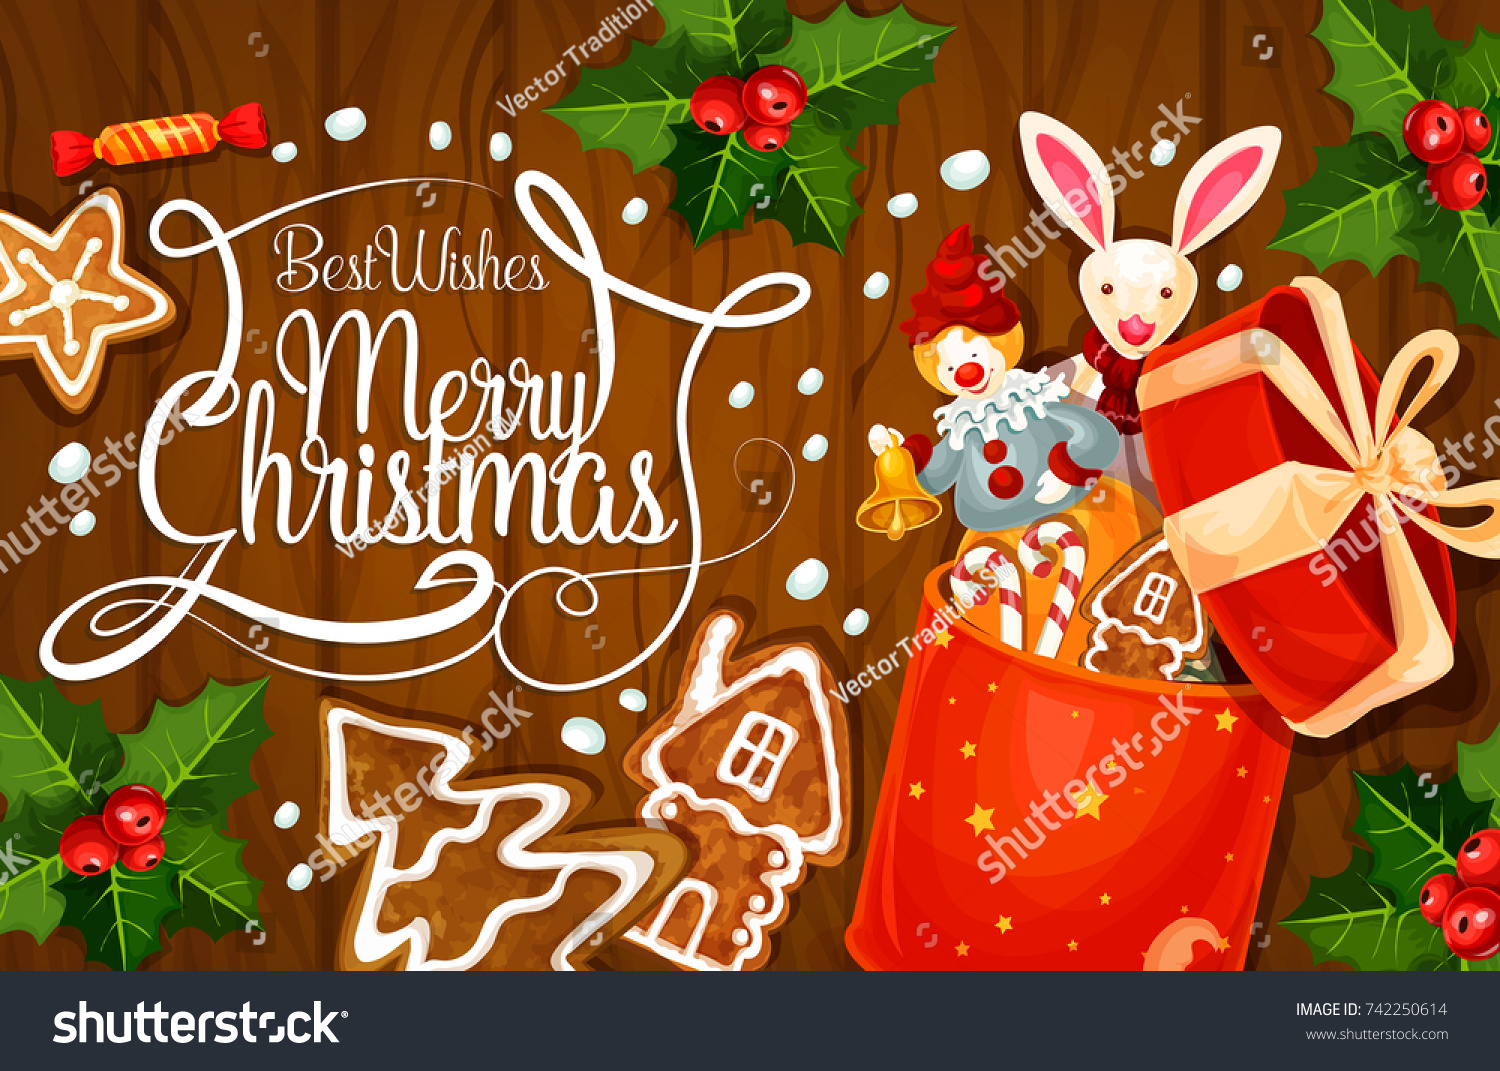 Merry Christmas Greeting Card Design Happy Stock Vector Royalty